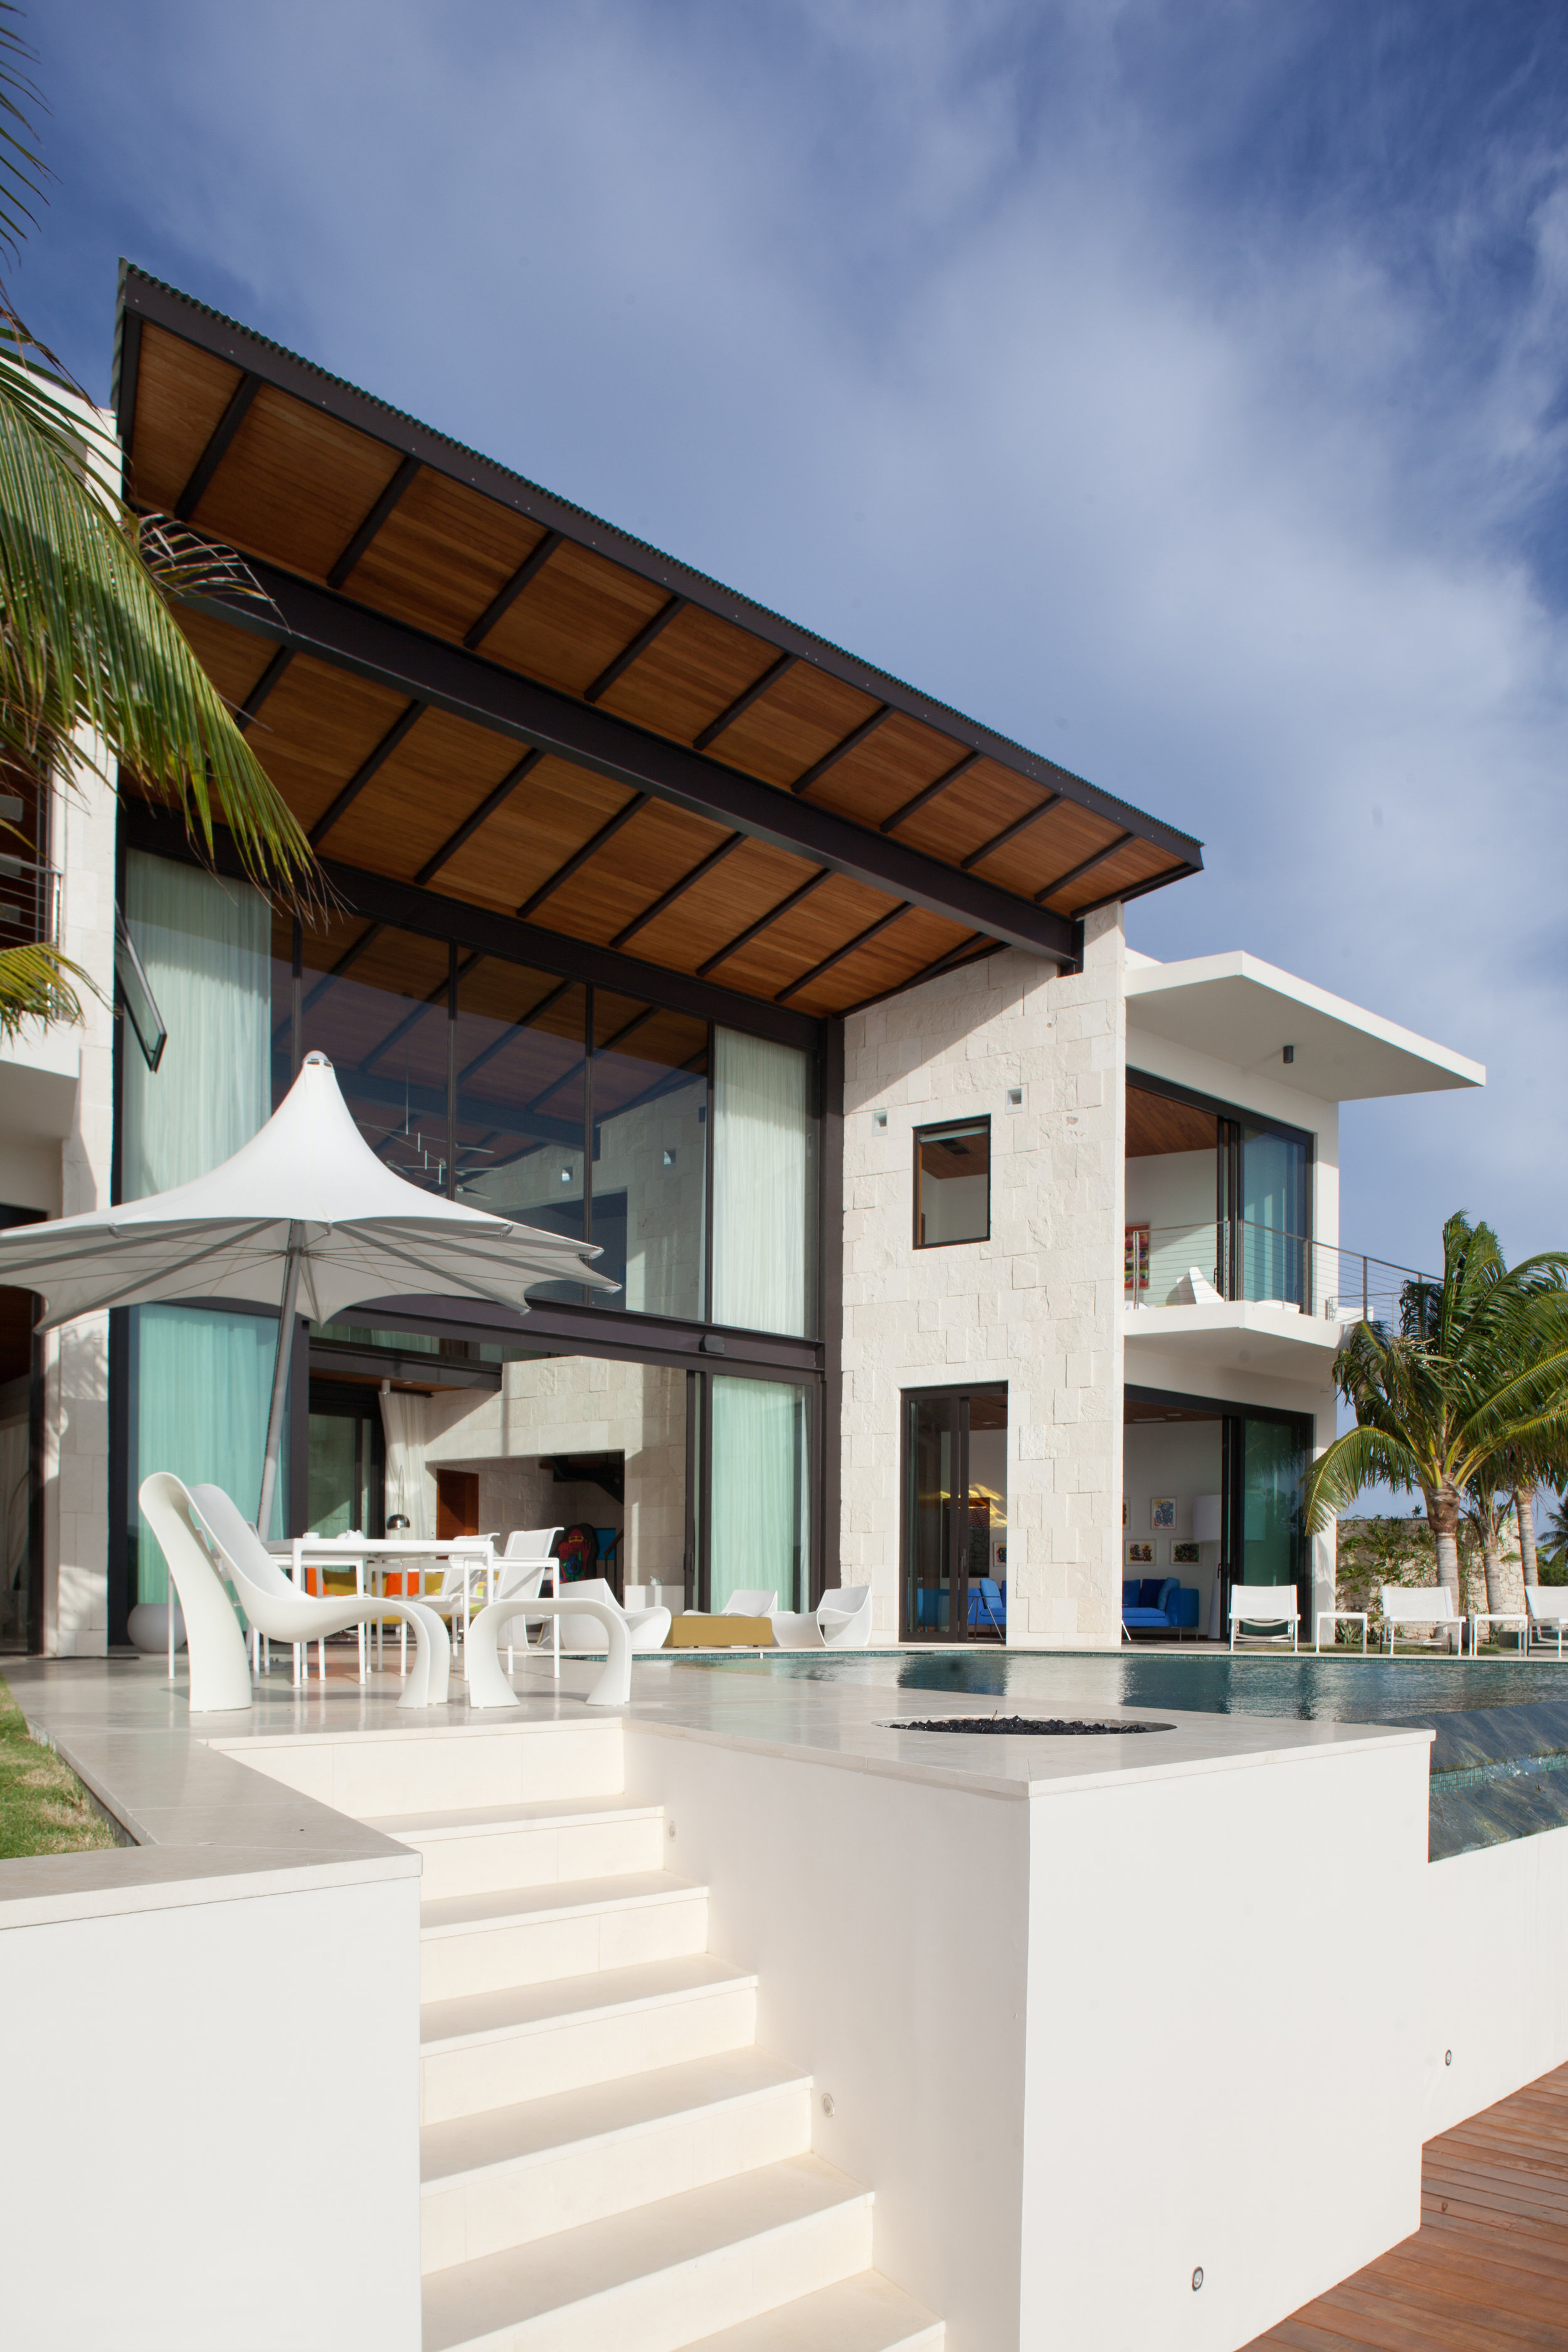 Bonaire Residence by Silberstein Architects Photo by Robin Hill (c) HI RES (30).jpg